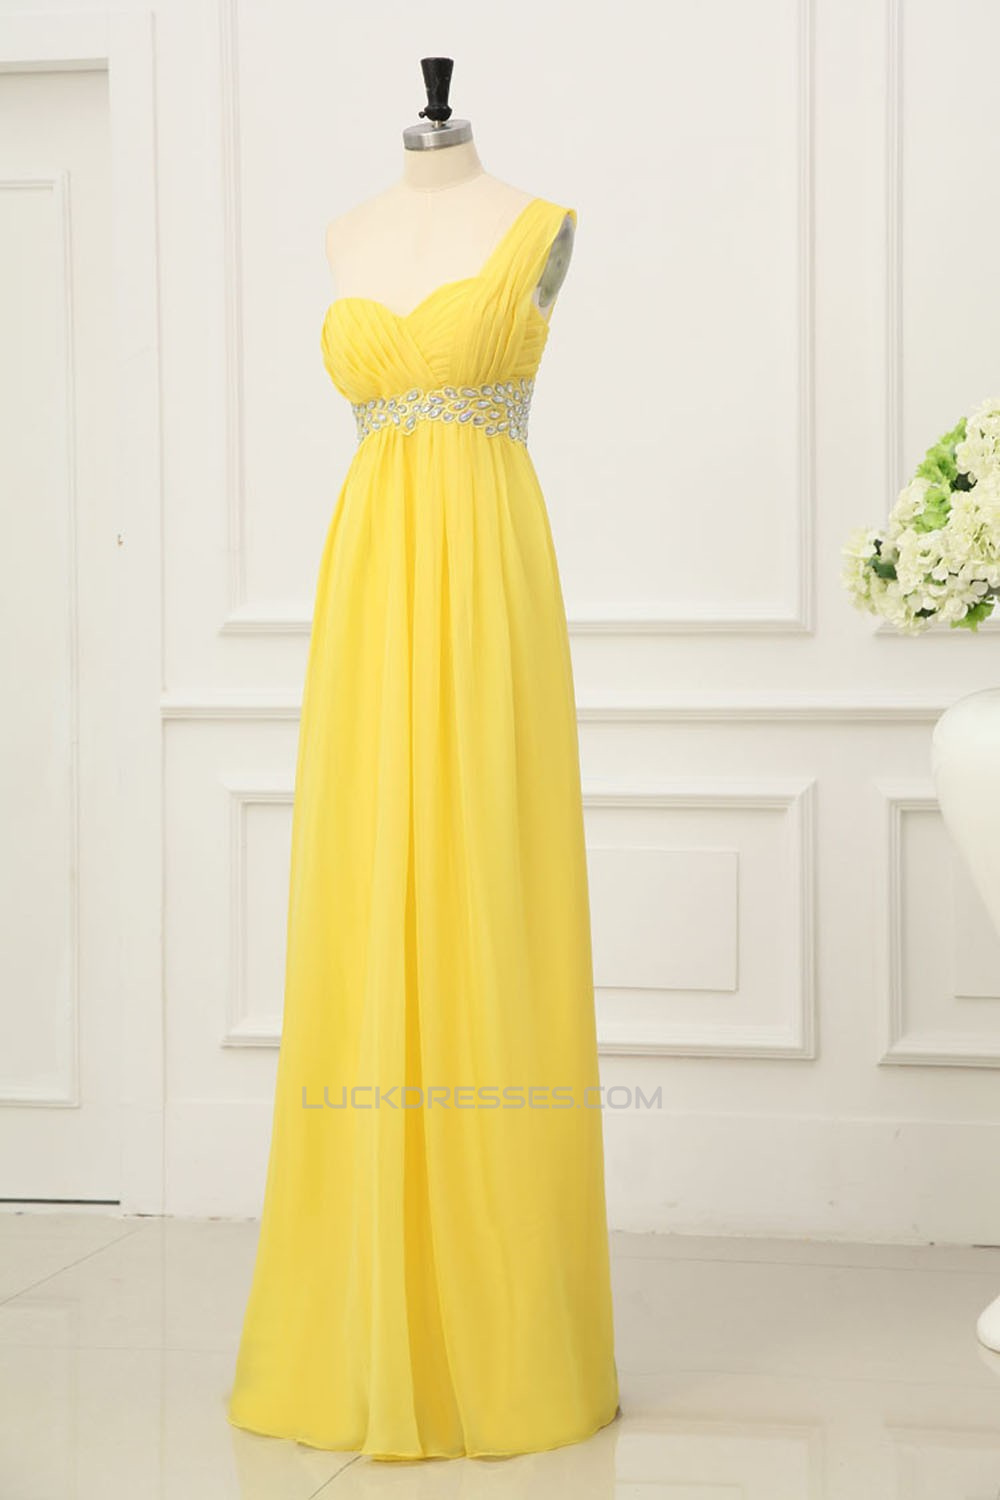 ed31262ccec8a Empire One-Shoulder Beaded Long Yellow Chiffon Prom Evening ...